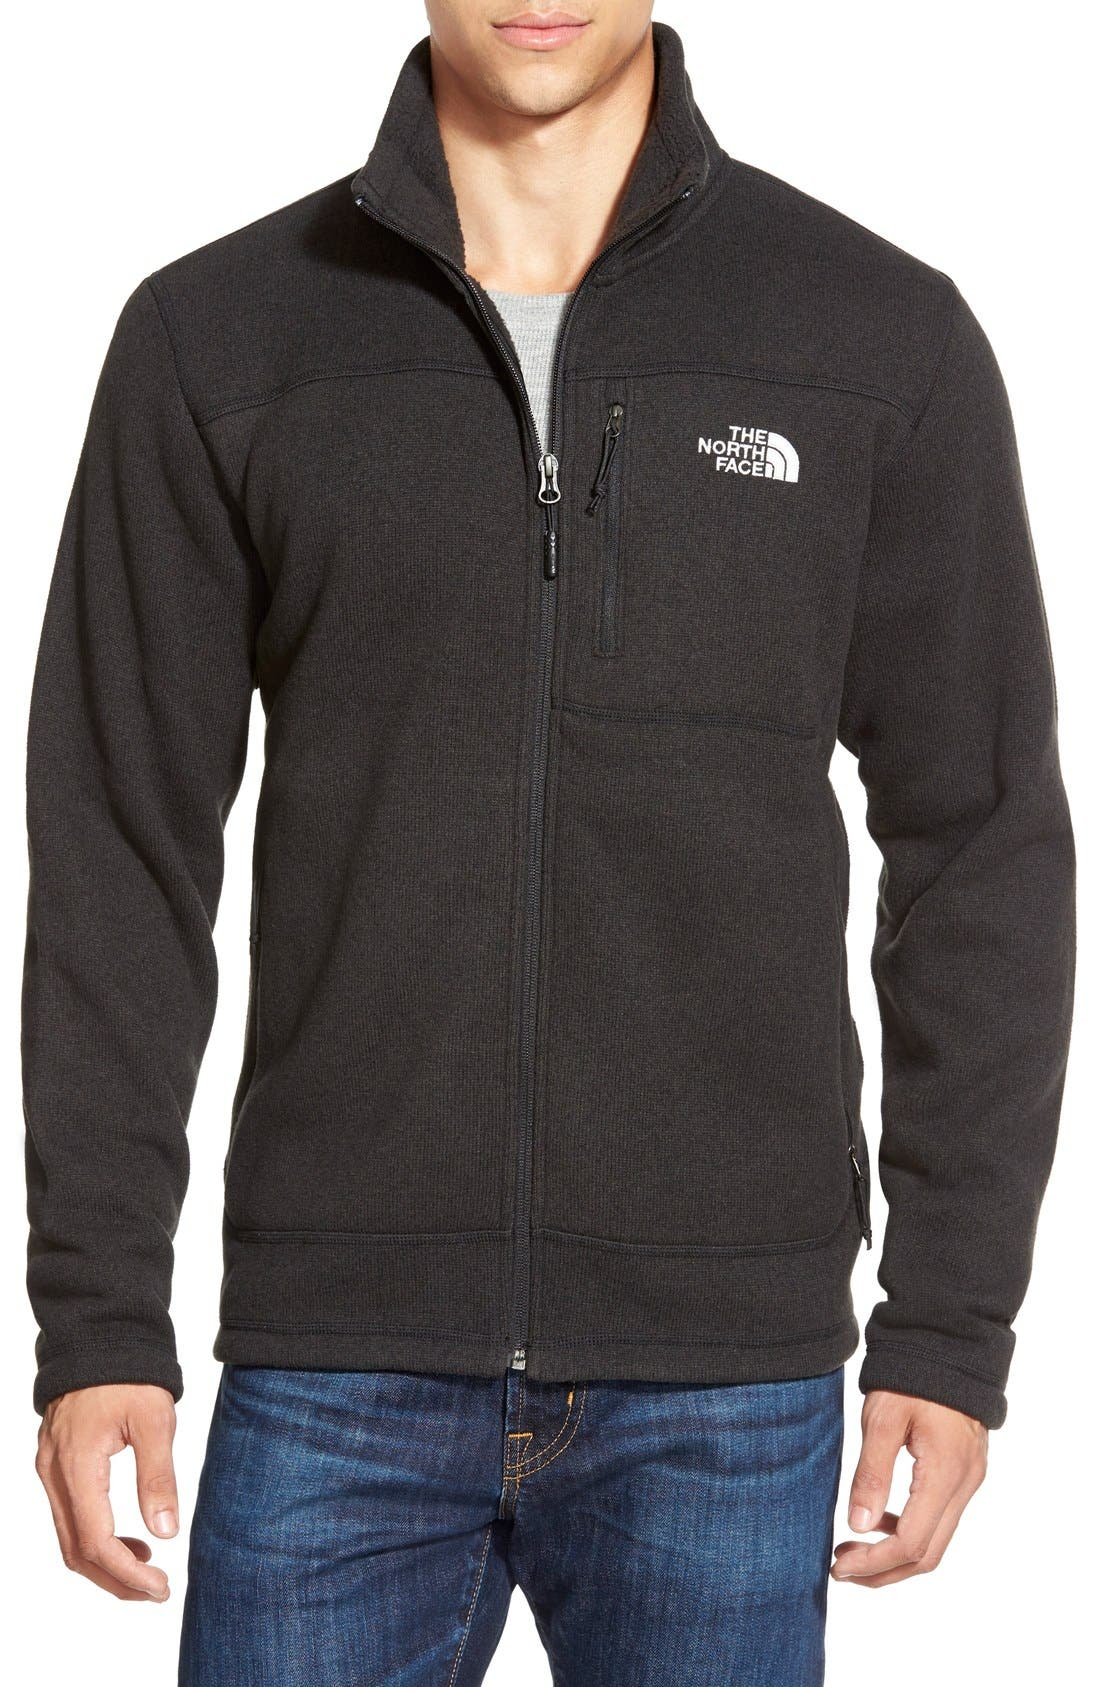 Alternate Image 1 Selected - The North Face 'Gordon Lyons' Zip Fleece Jacket